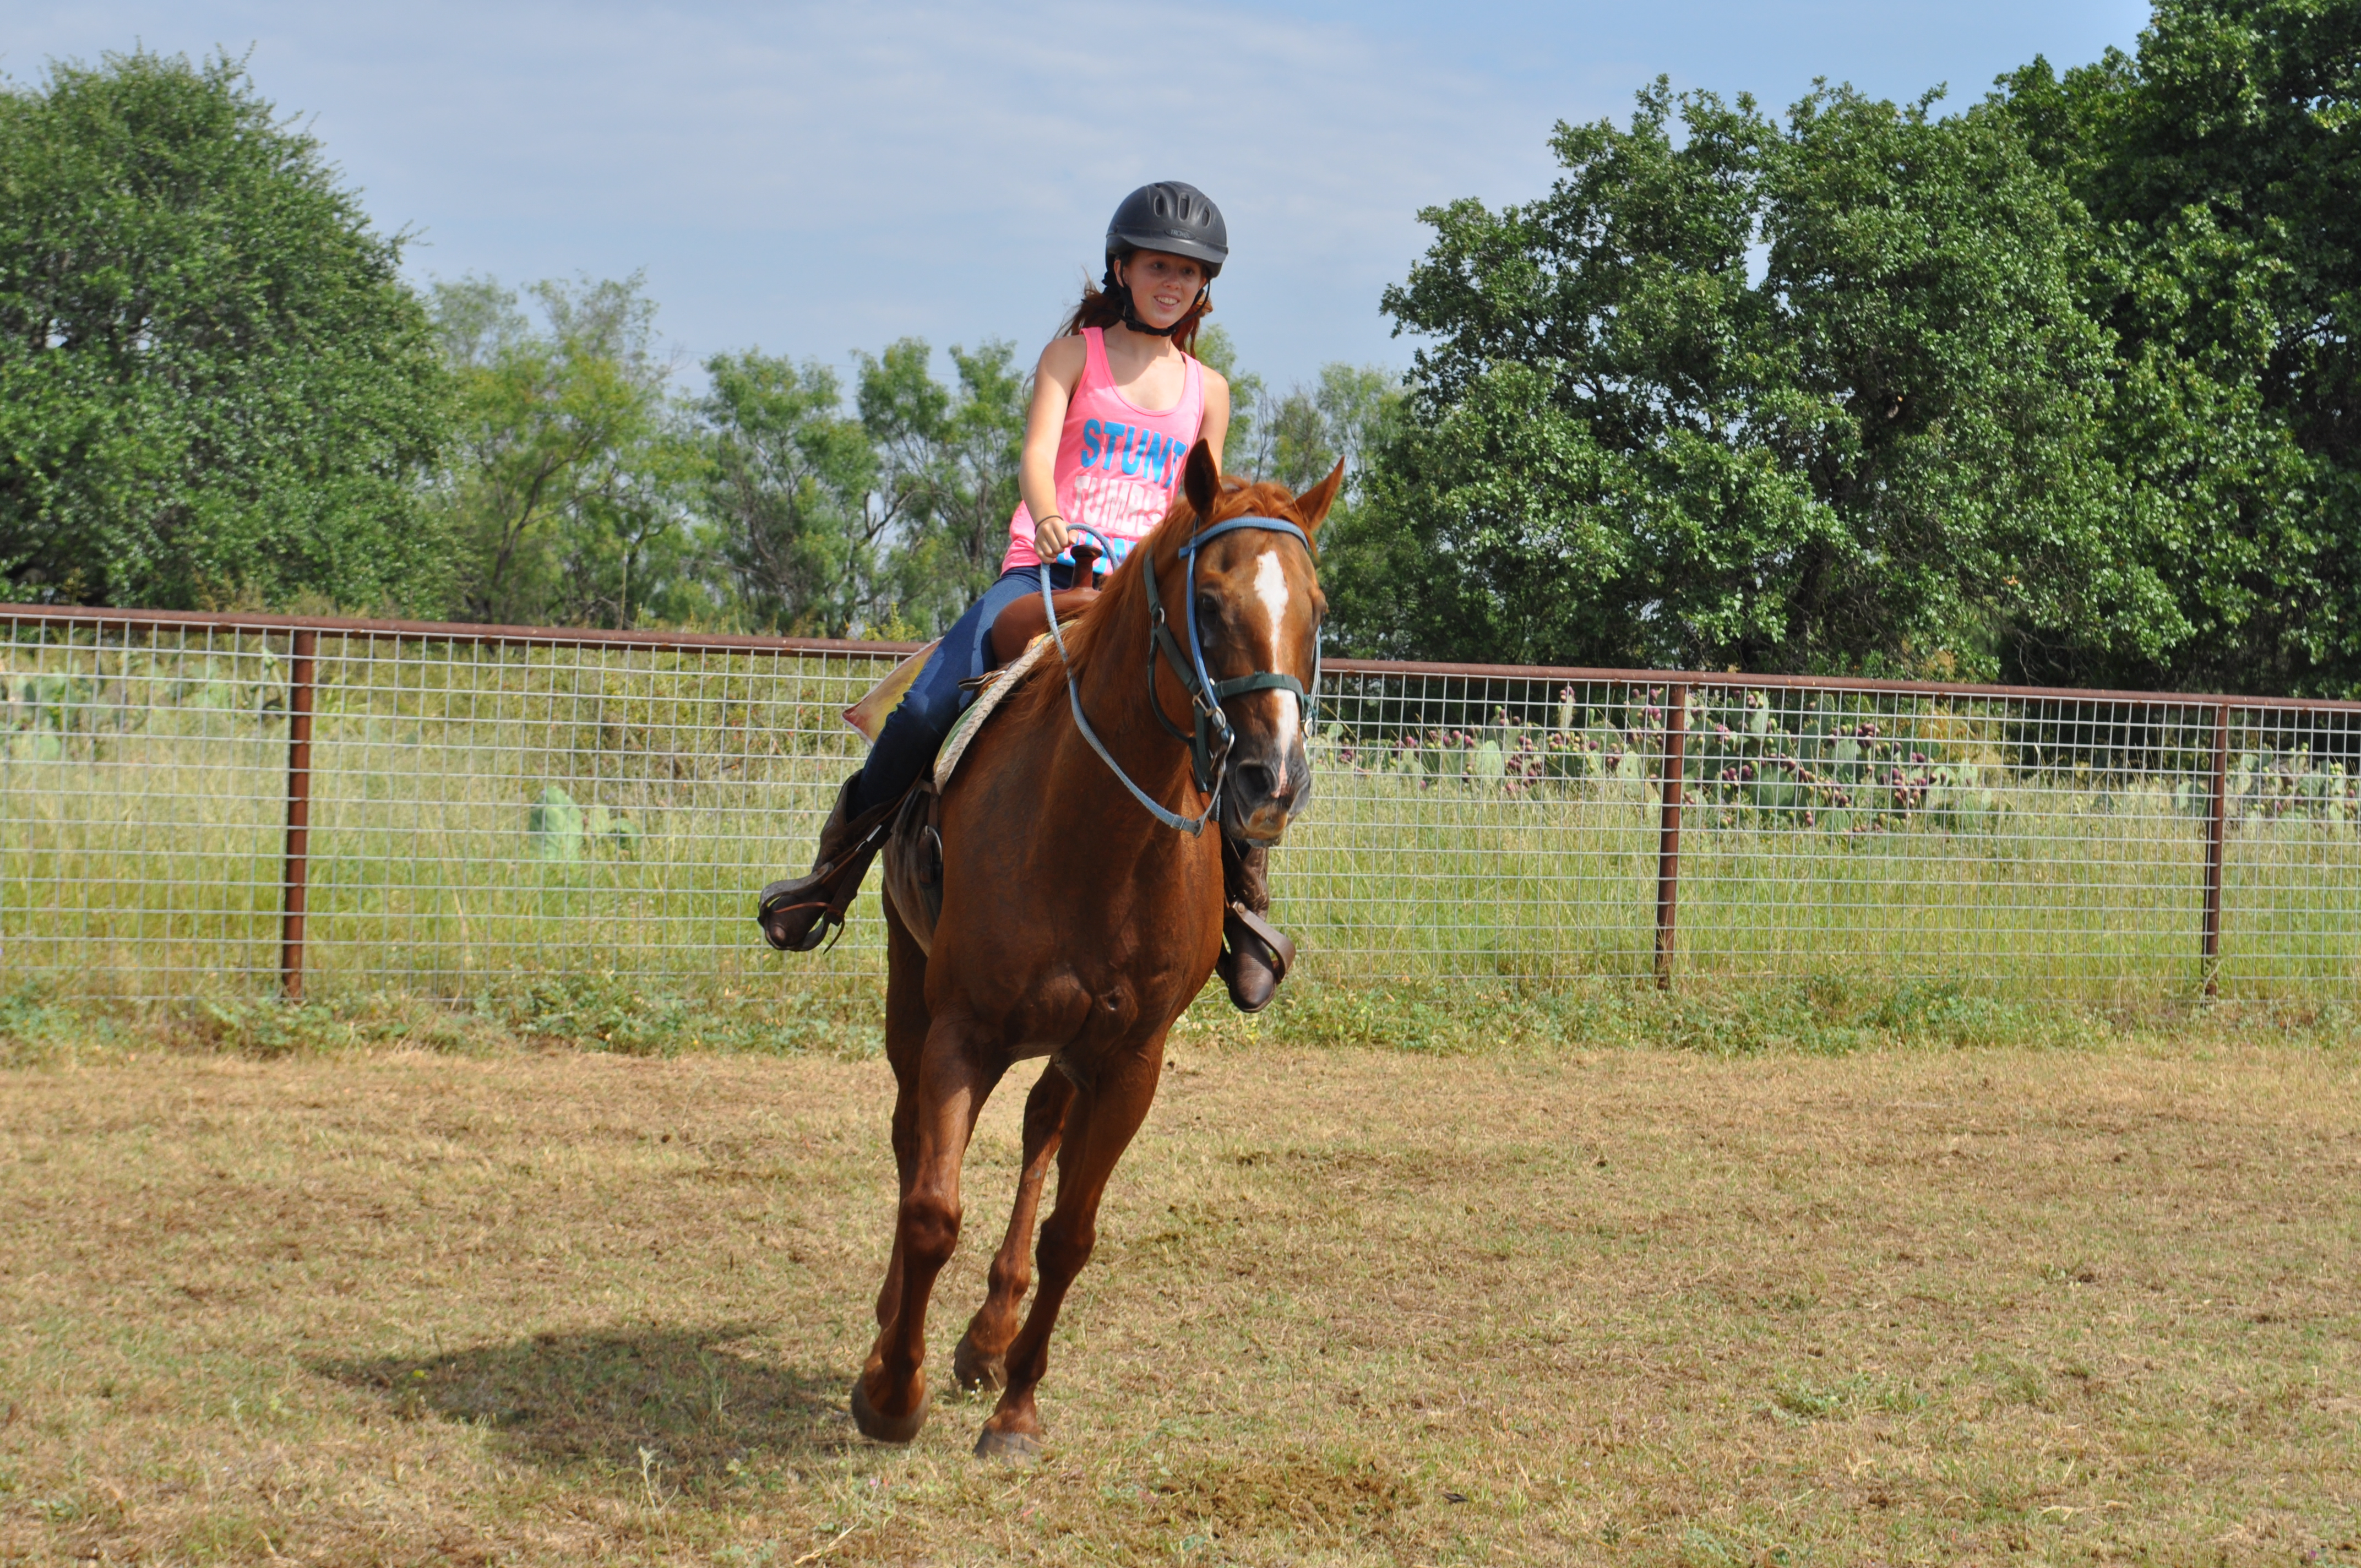 Horseback riding at camp is a special thrill!